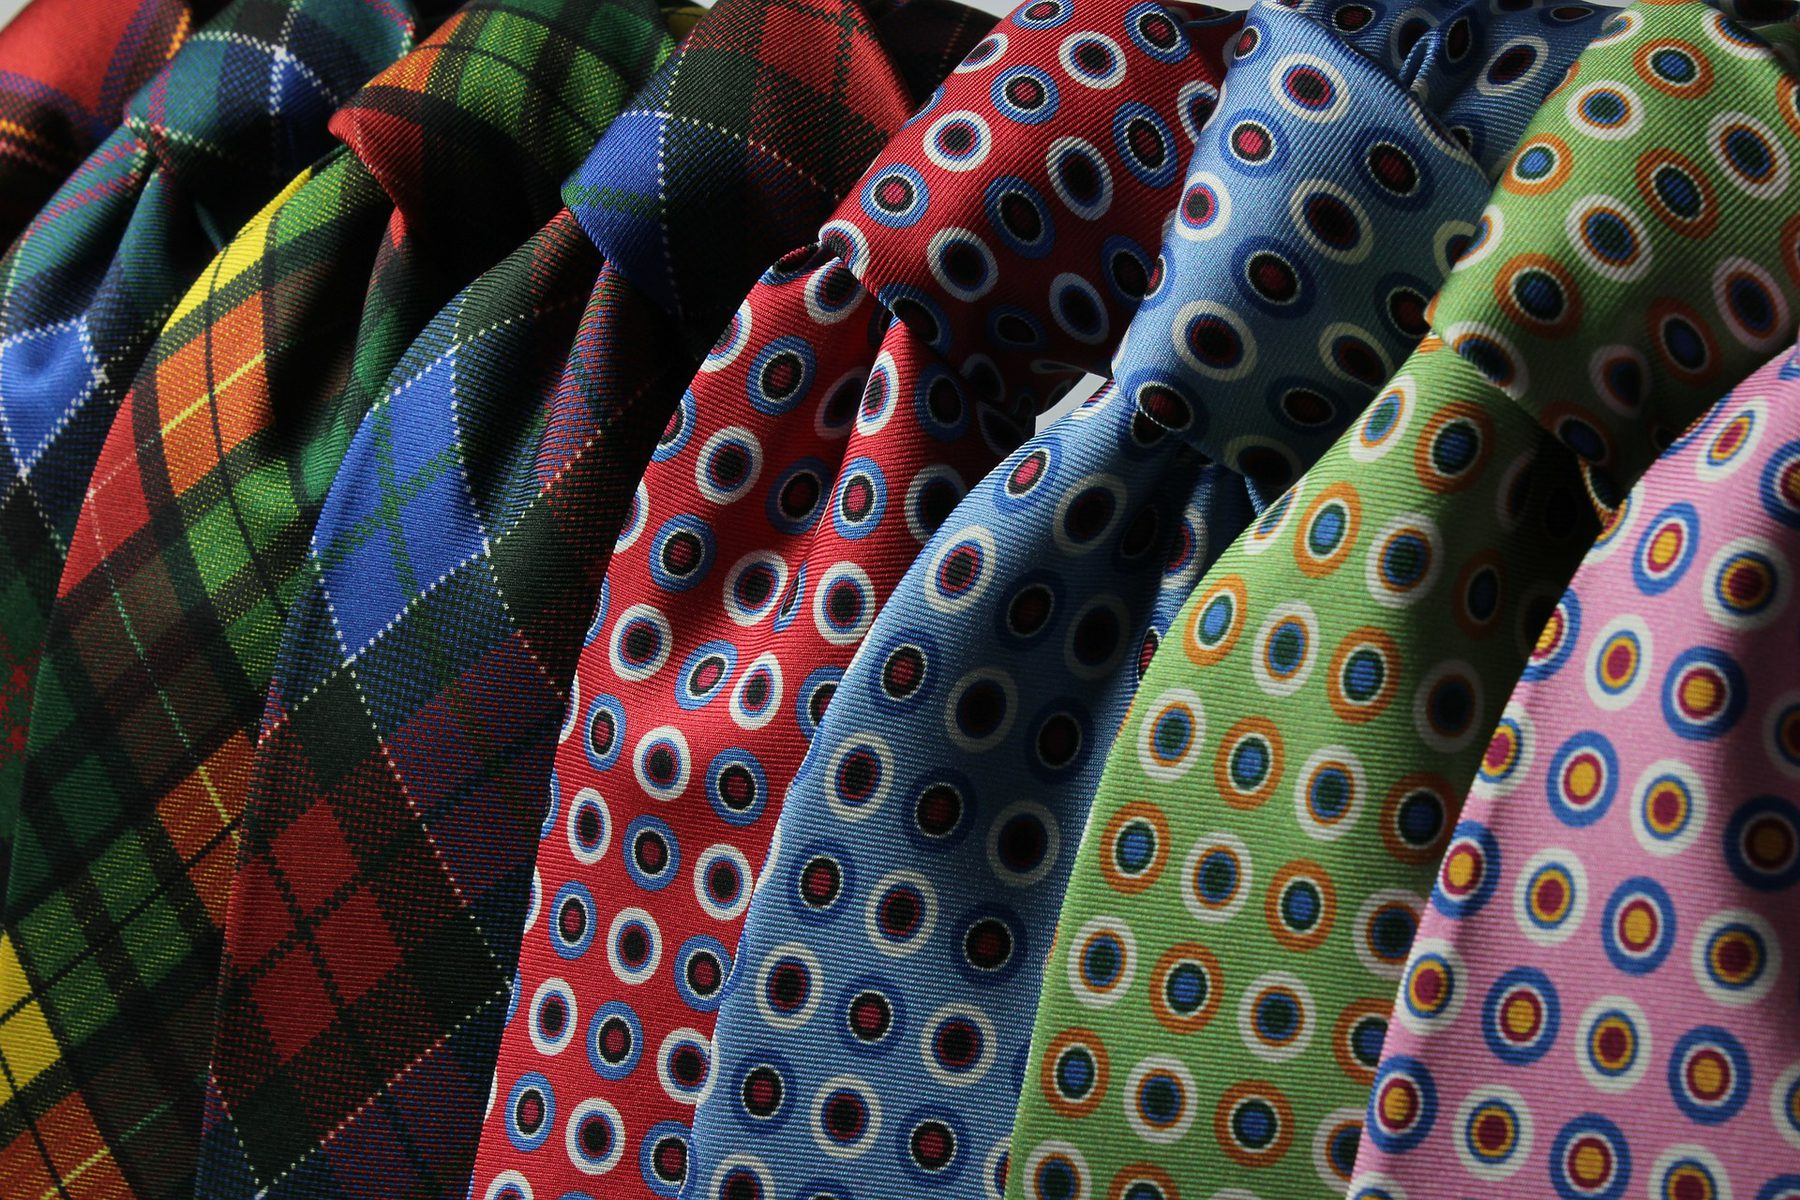 Fashion & Textiles (Sector Header: Coloured Ties)